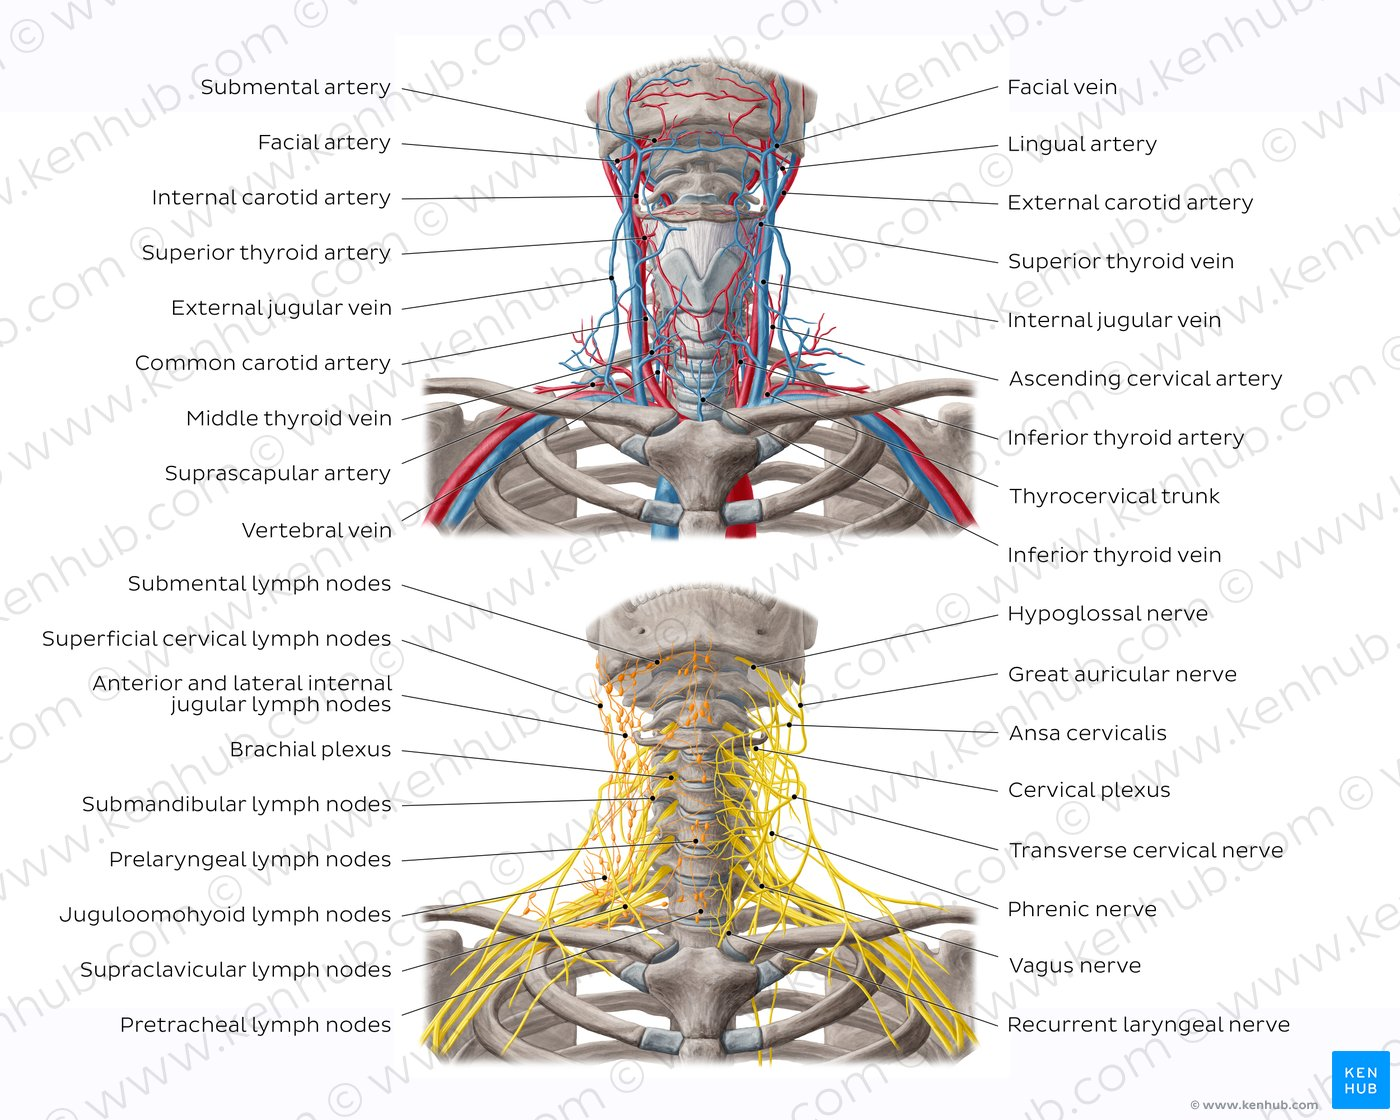 hight resolution of neurovasculature and lymph nodes of the neck overview